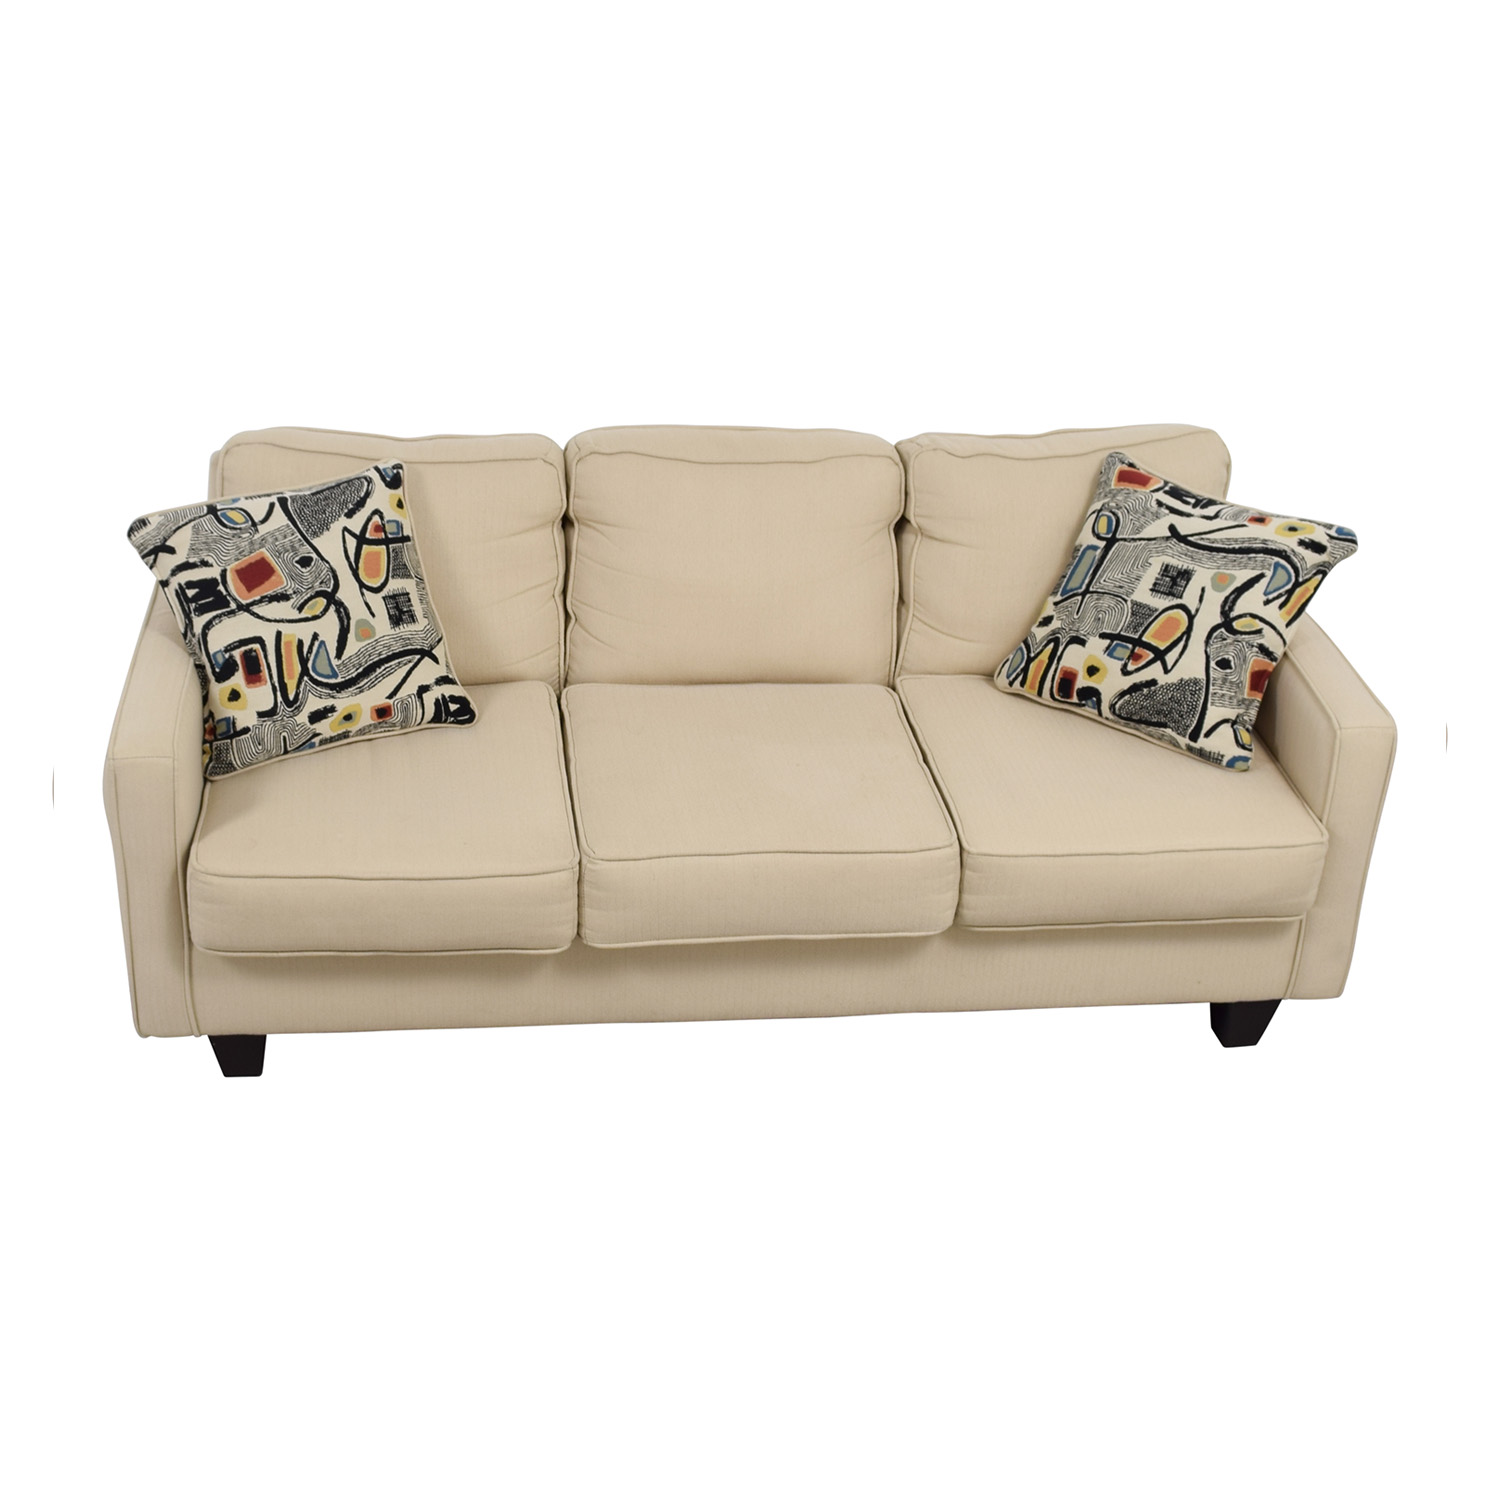 Serta Serta Tan Three-Cushion Sofa coupon